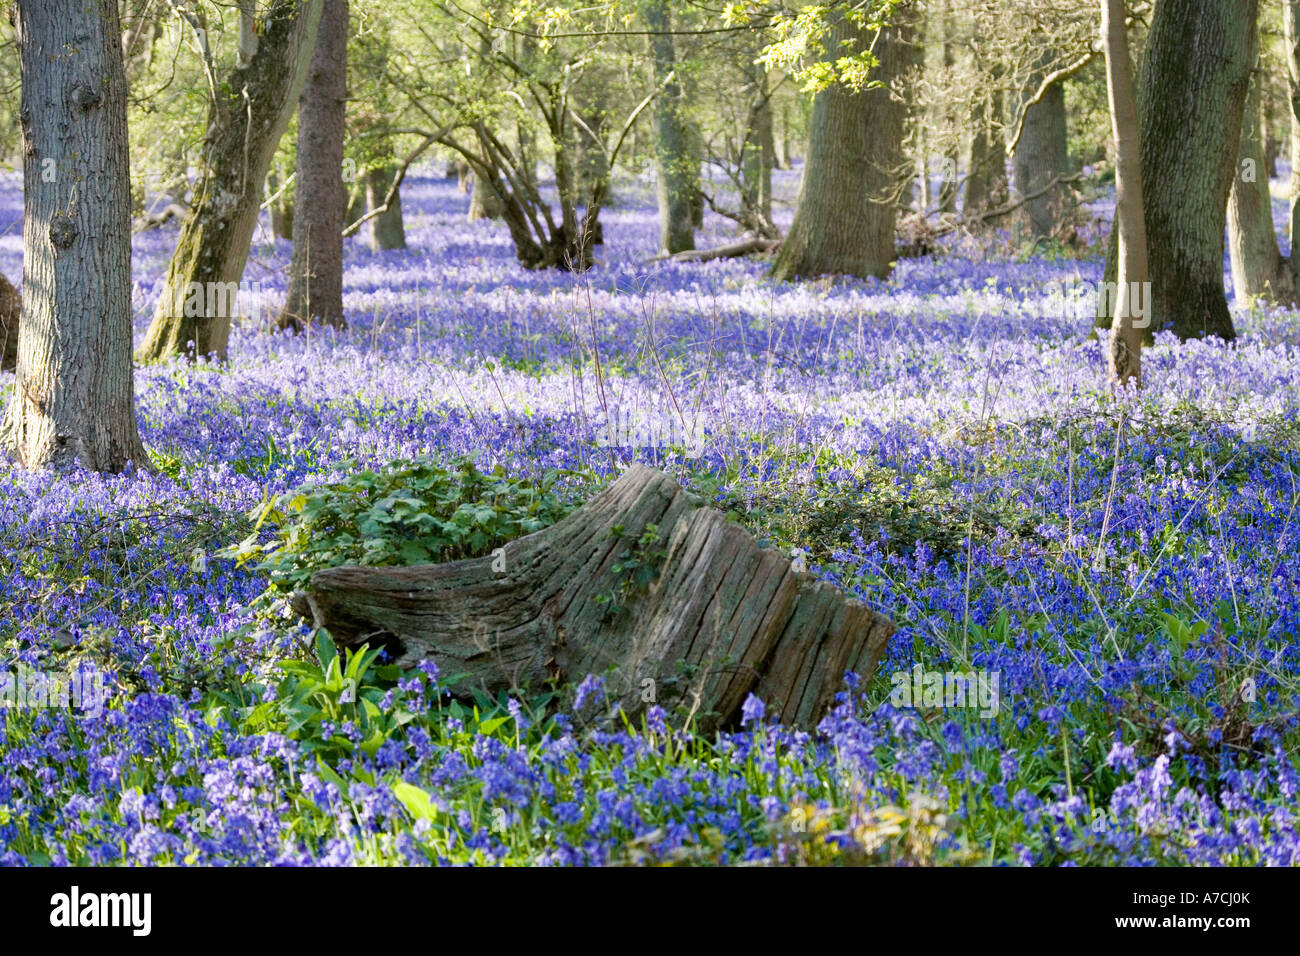 Bluebells carpet oak woodland, Hambleden, Bucks., UK. Stock Photo